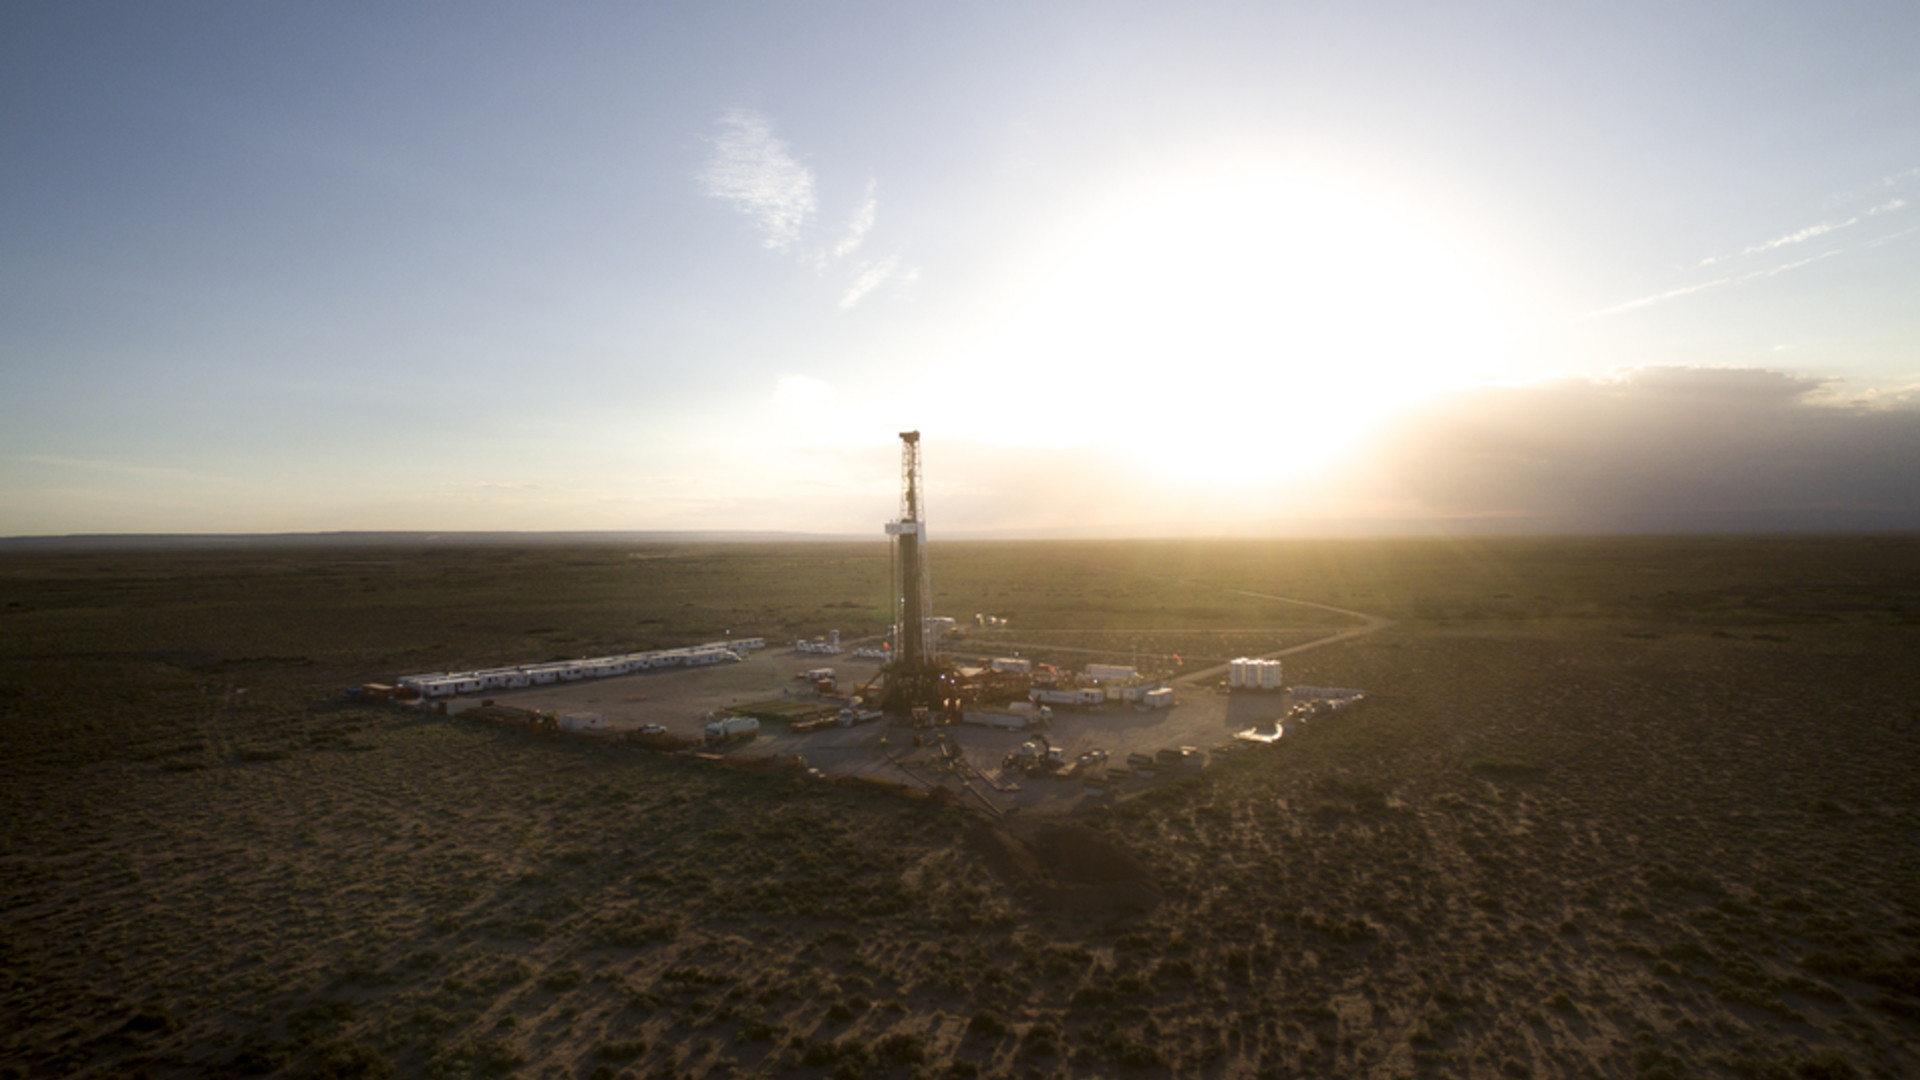 Wintershall Dea partners with ConocoPhillips to develop Neuquén basin blocks